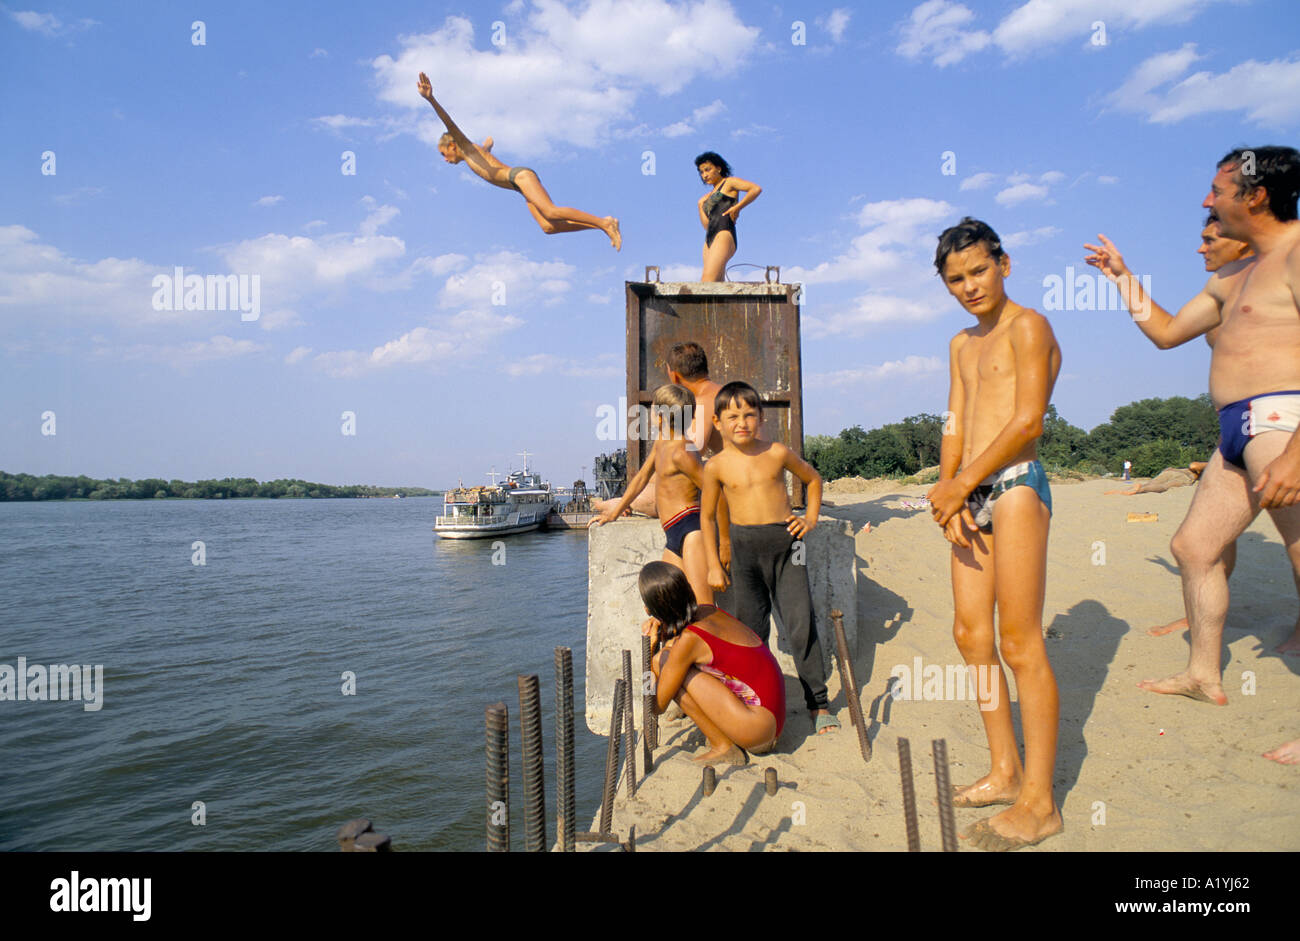 THE VOLGA RIVER RUSSIA MIDDLE CLASS RUSSIANS BATH ON BANKS OF - The volga river